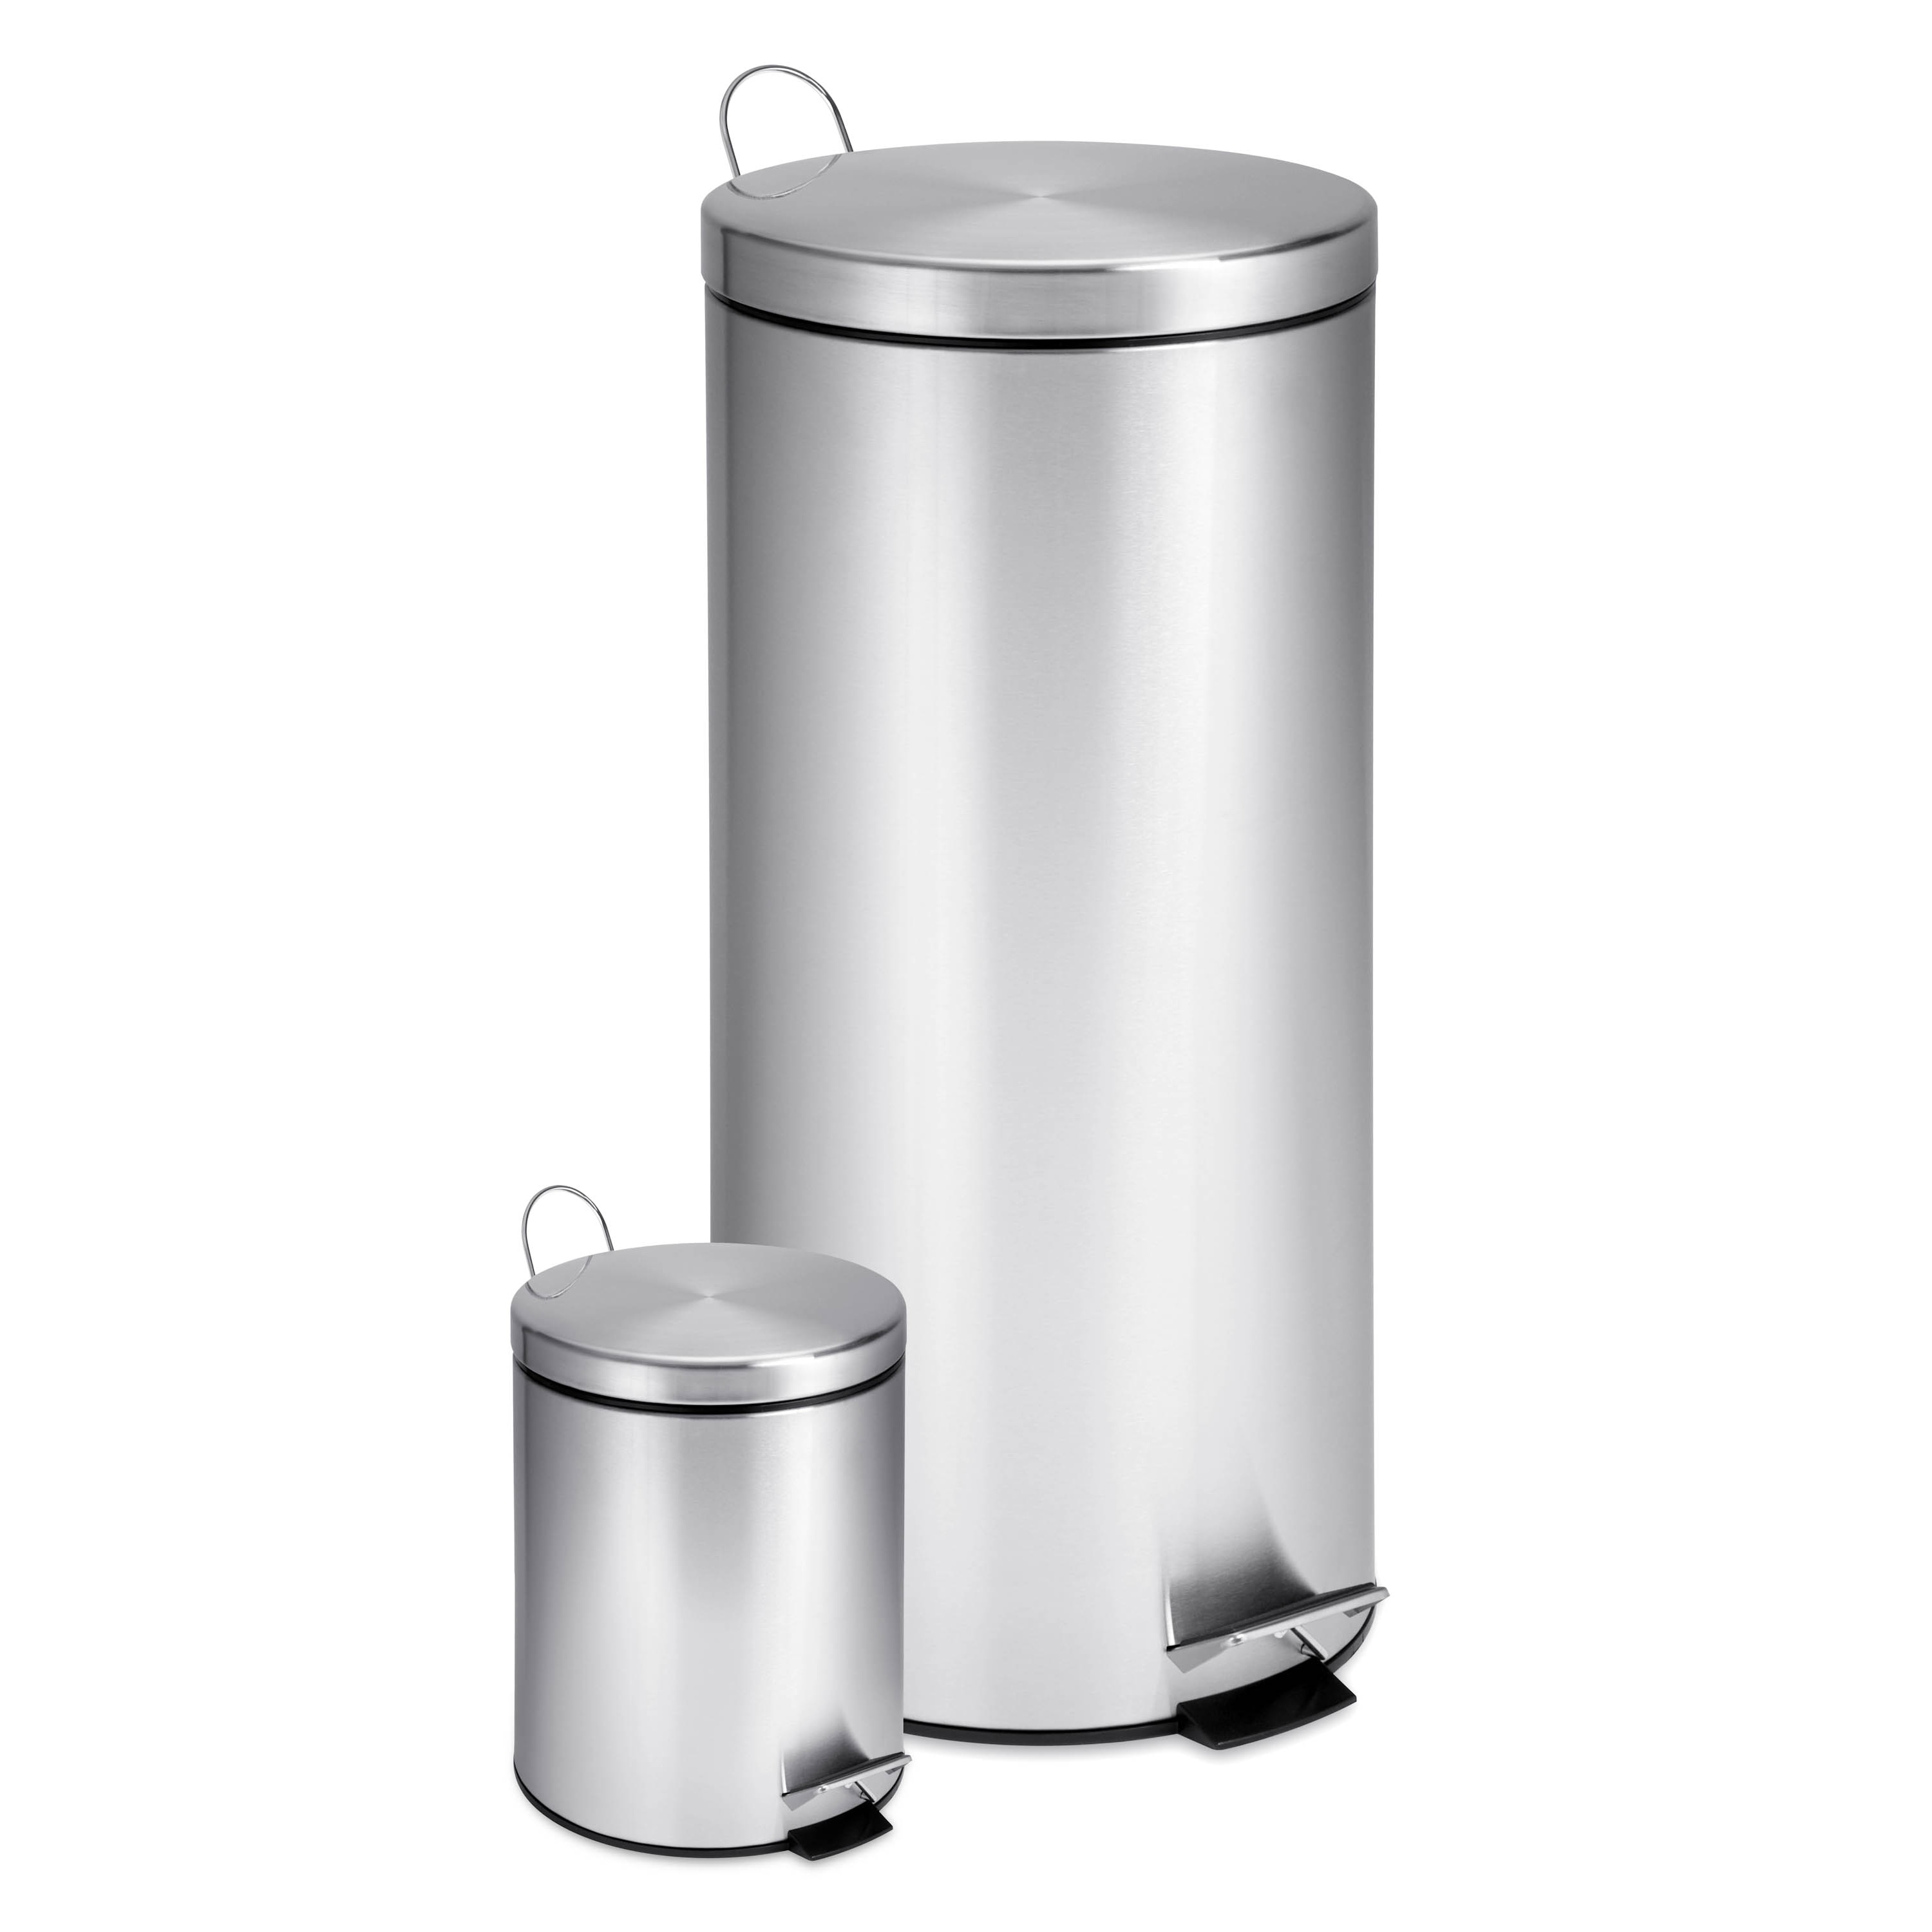 Details About Stainless Steel Step Trash Can 2 Set 30 L Large 3 Small Round Deep Lids Indoor